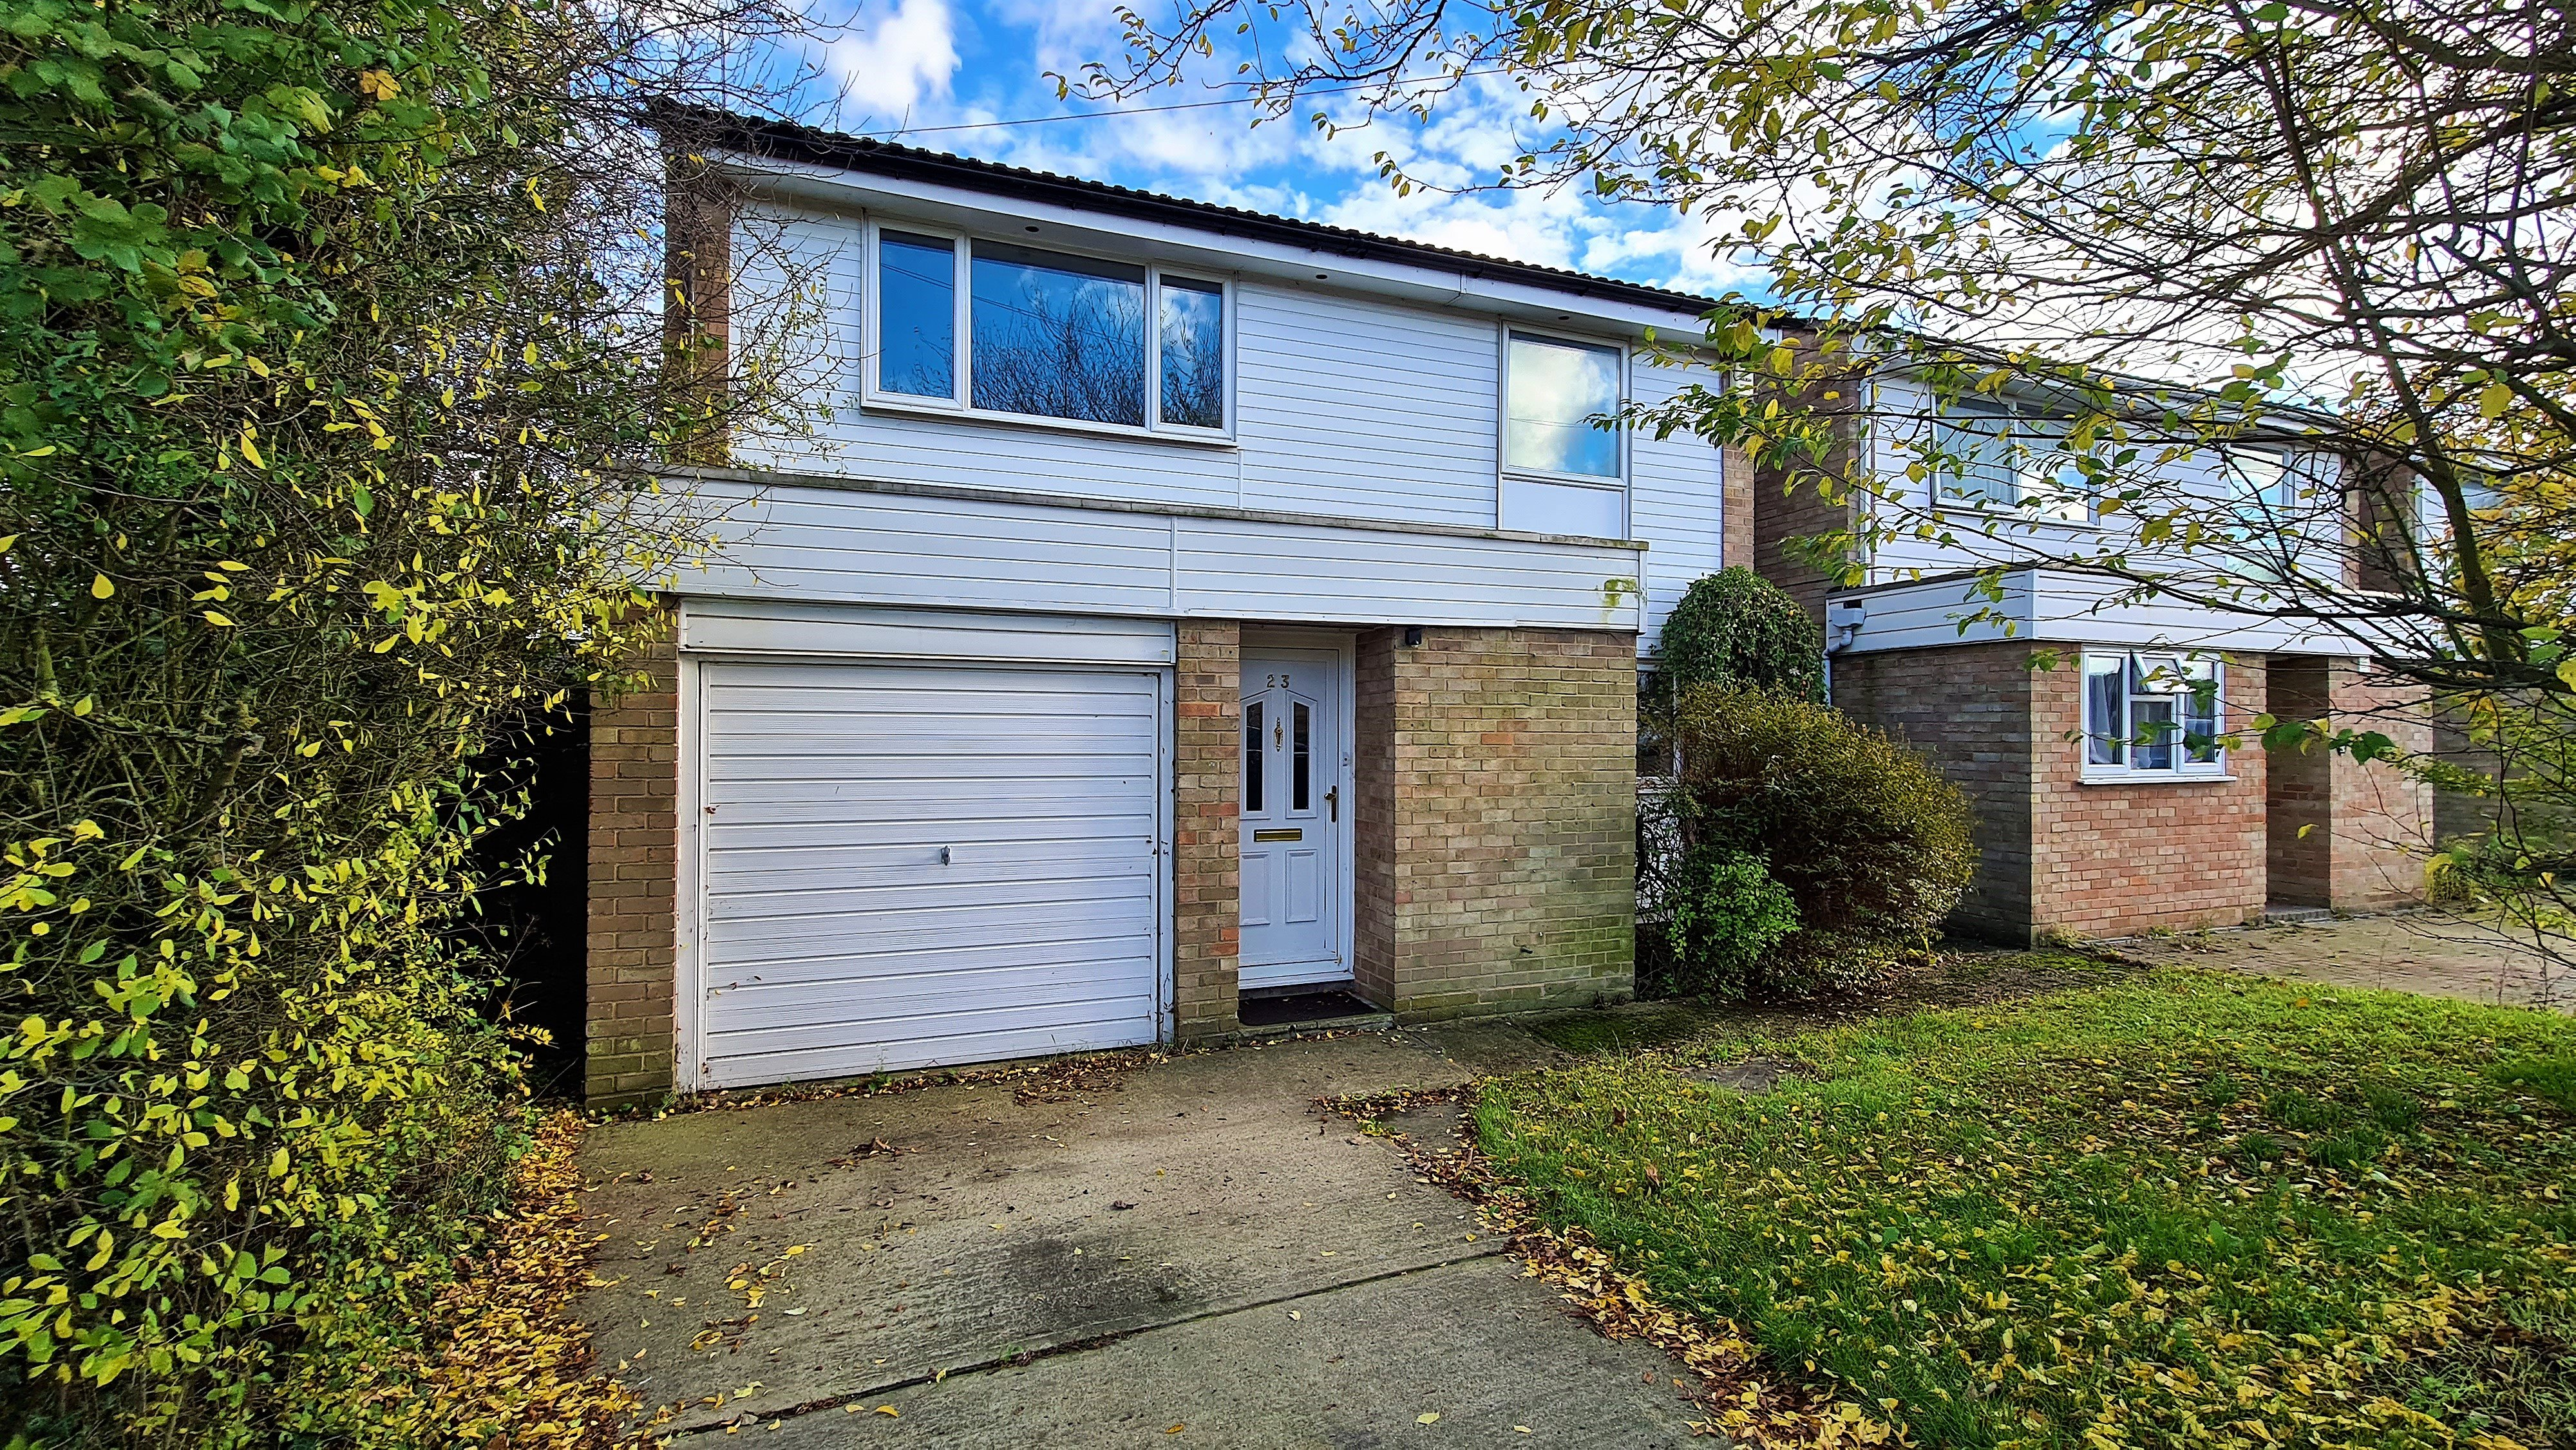 4 bed detached house for sale in Forest Road (10017), Witham - Property Image 1